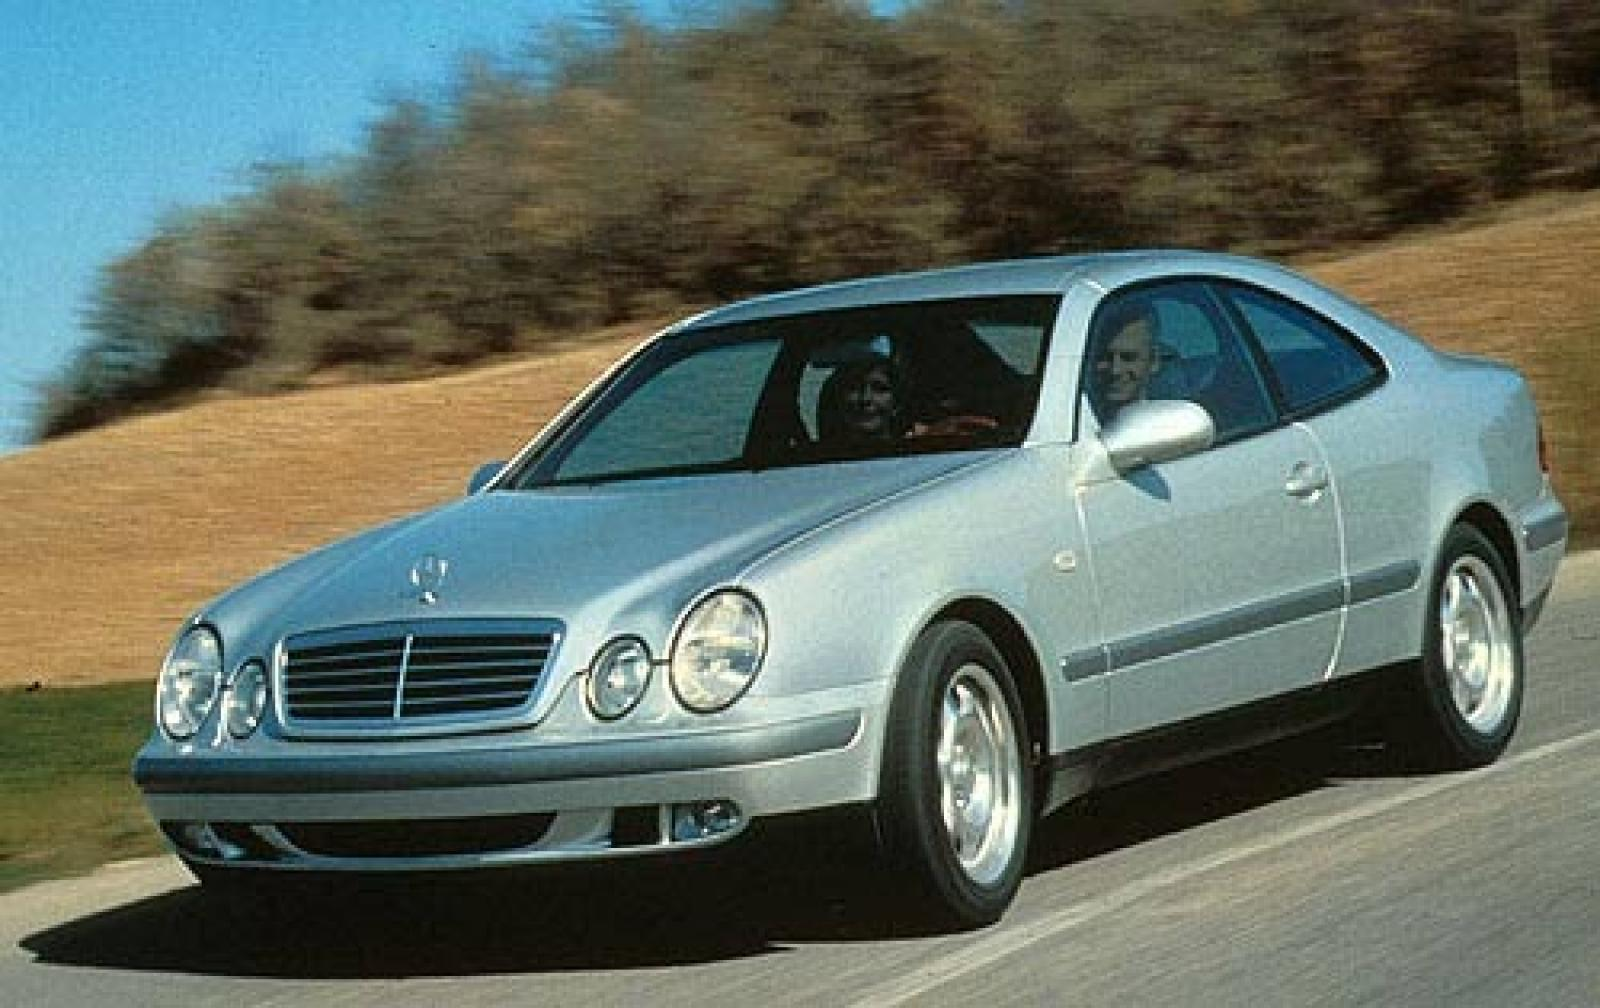 1998 mercedes benz clk class information and photos zombiedrive. Black Bedroom Furniture Sets. Home Design Ideas